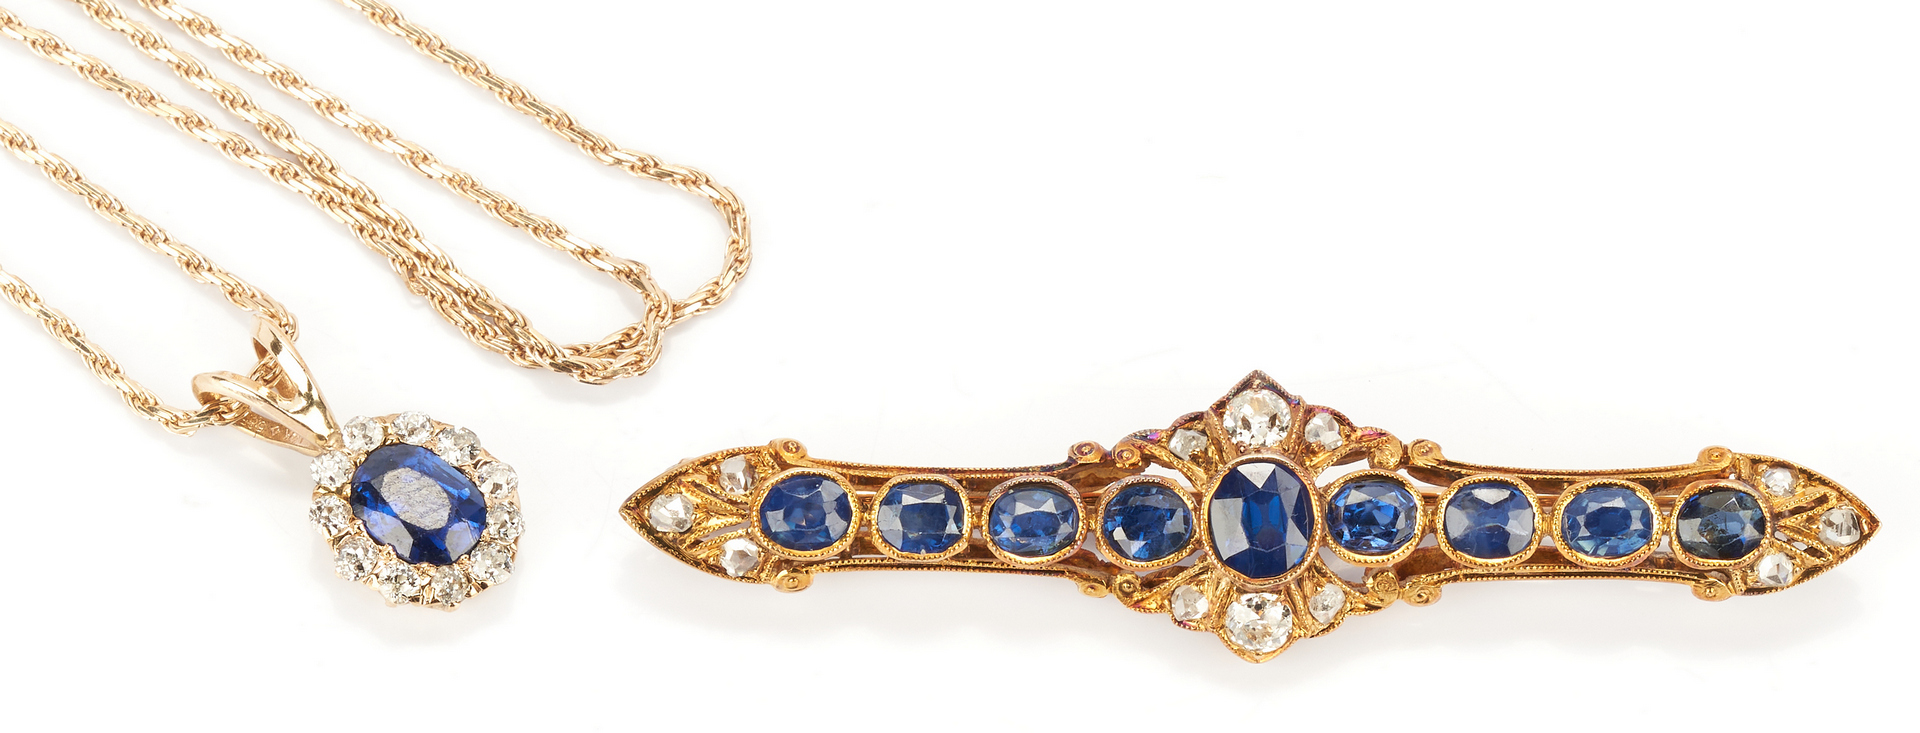 Lot 780: Ladies 14K Sapphire and Diamond Necklace and Pin